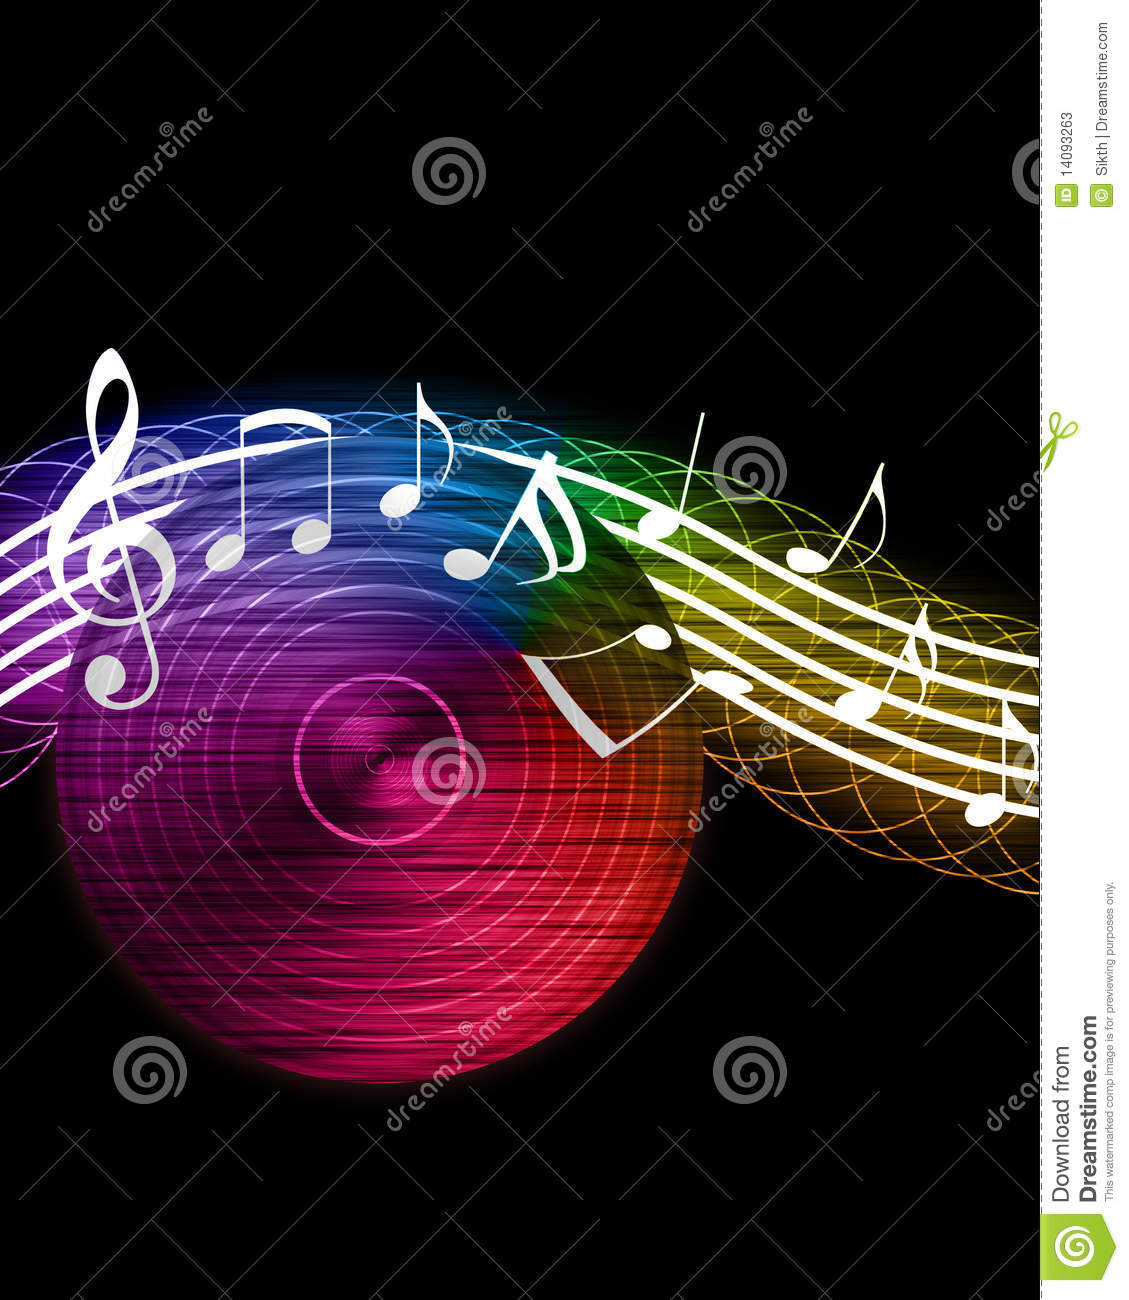 Creative Music Background Stock Photos - Image: 14093263